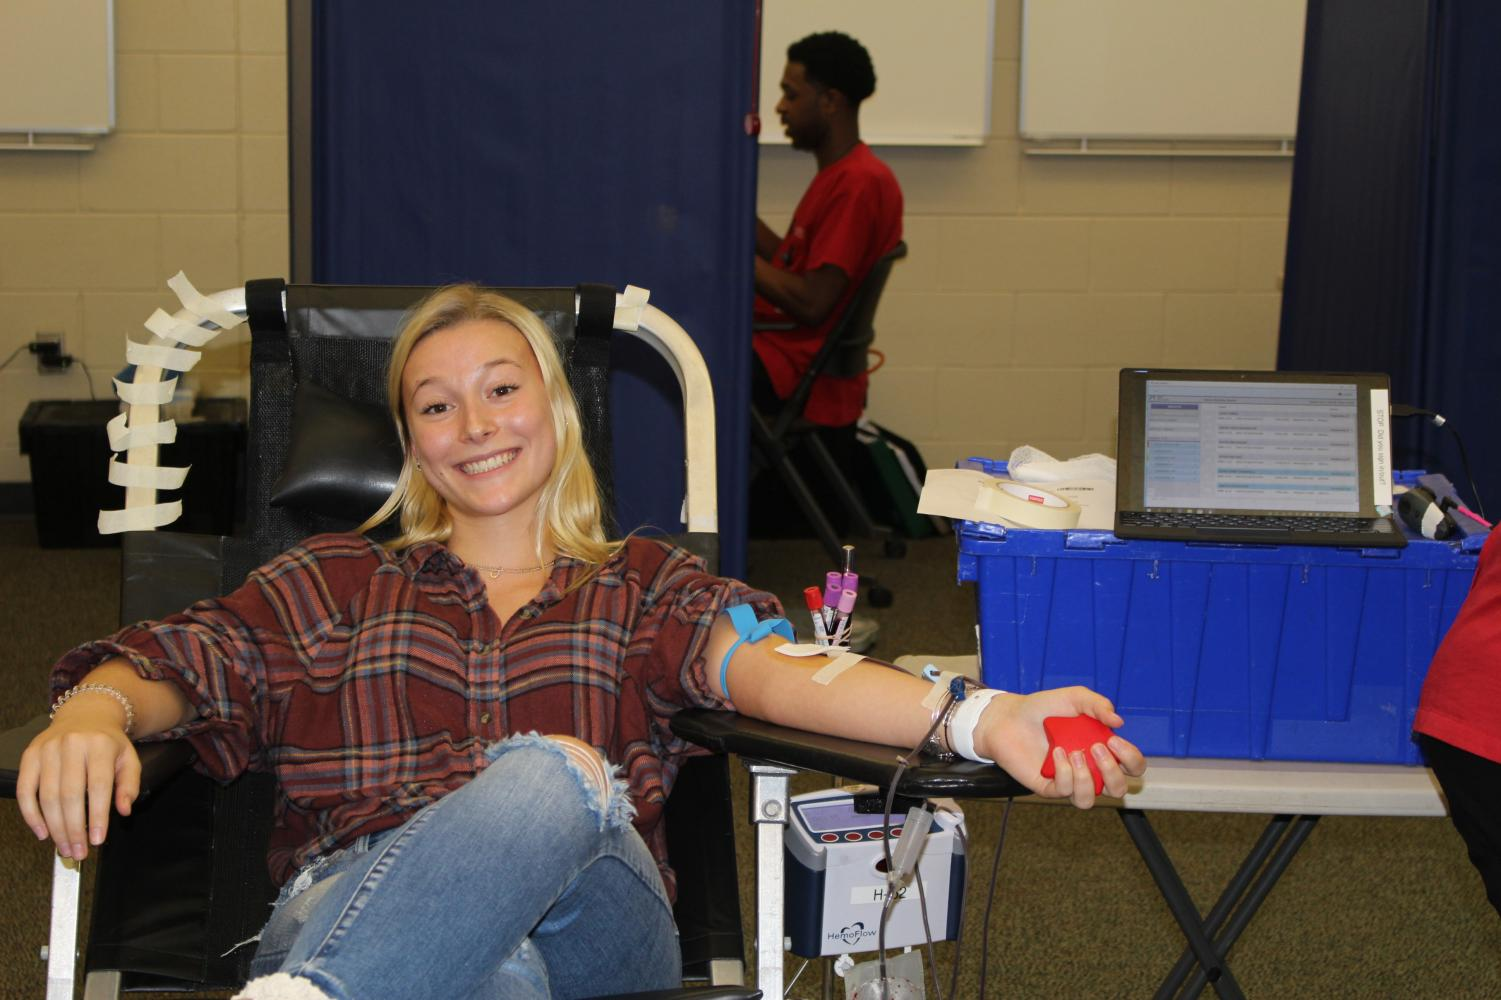 Junior Alyssa Hall smiles as she is giving blood for the good cause.